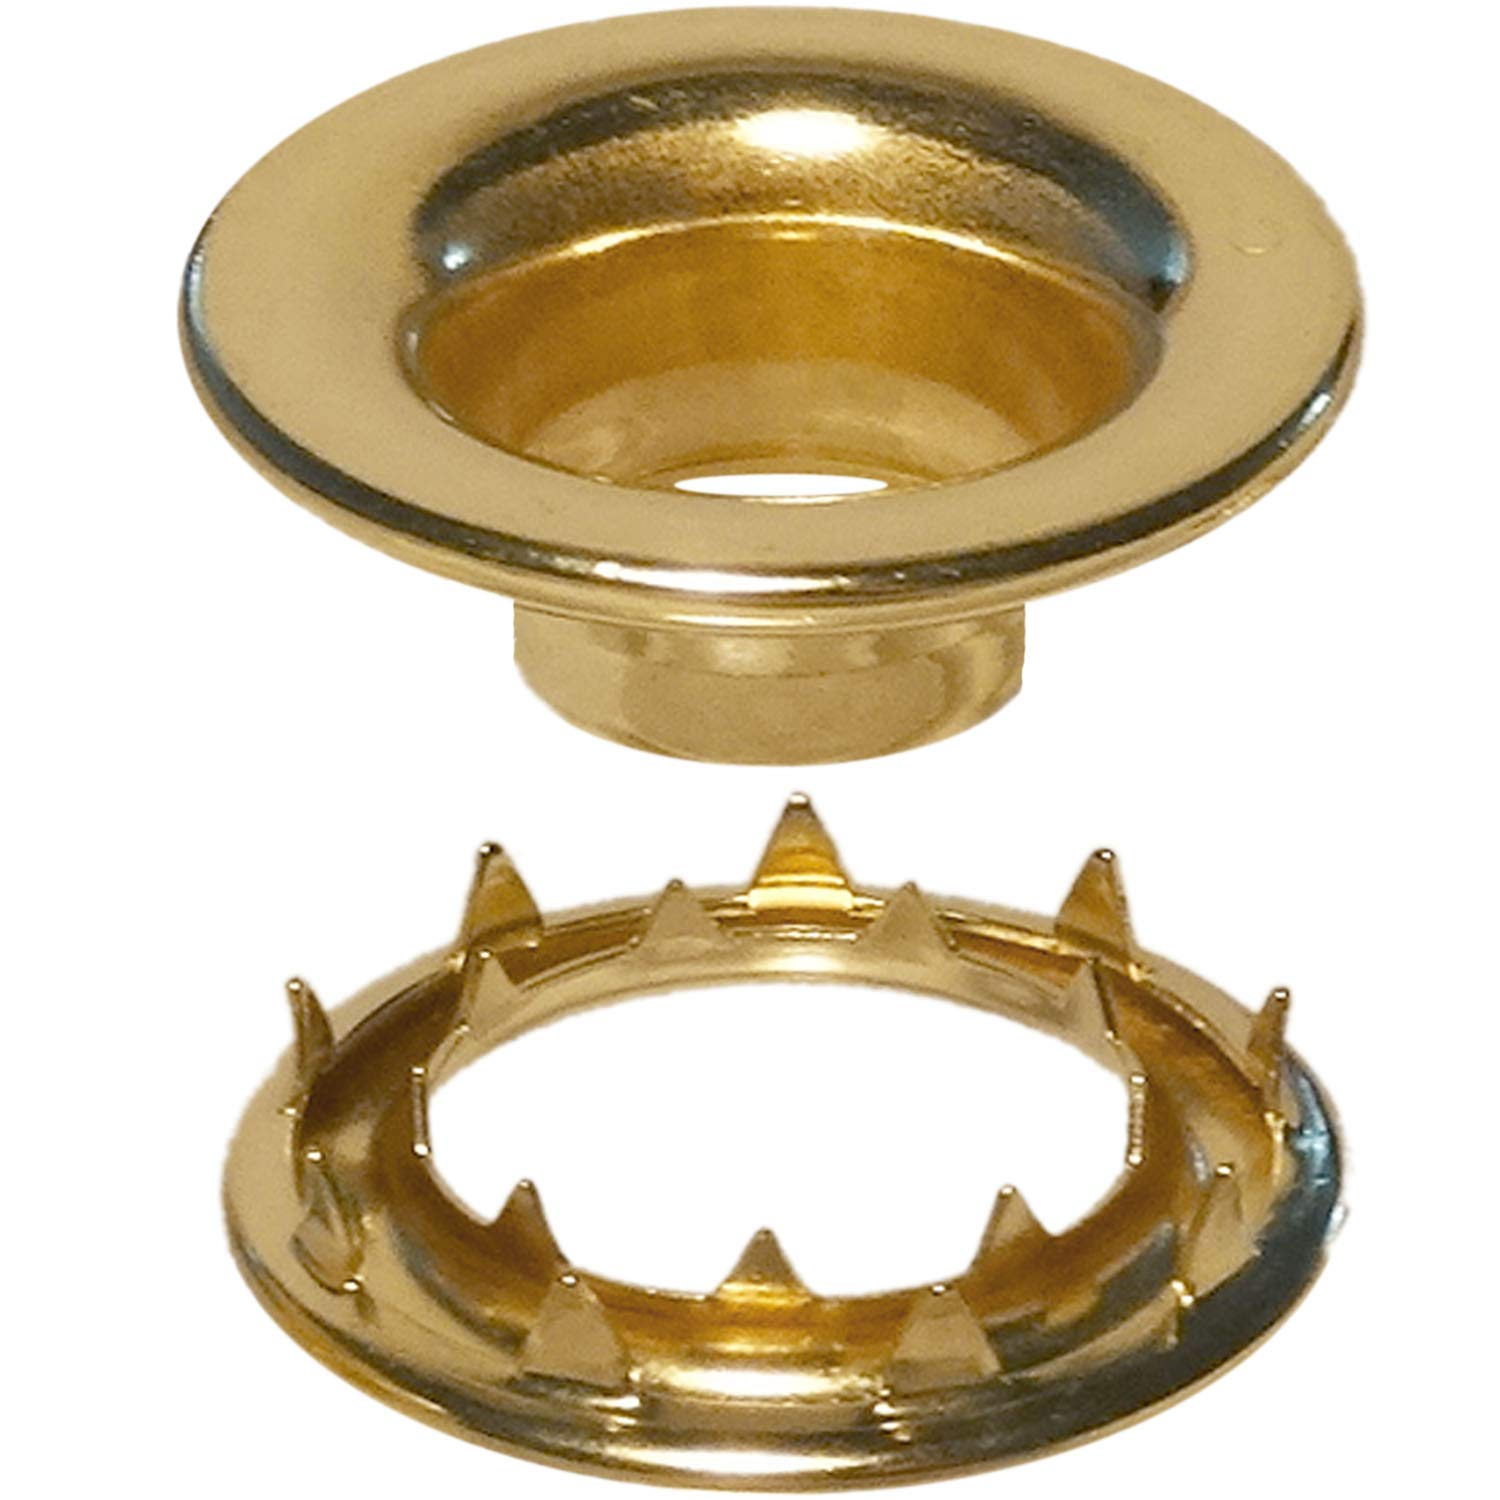 Stimpson Rolled Rim Grommet and Spur Washer Brass Durable, Reliable, Heavy-Duty #5 Set (1,440 Pieces of Each)